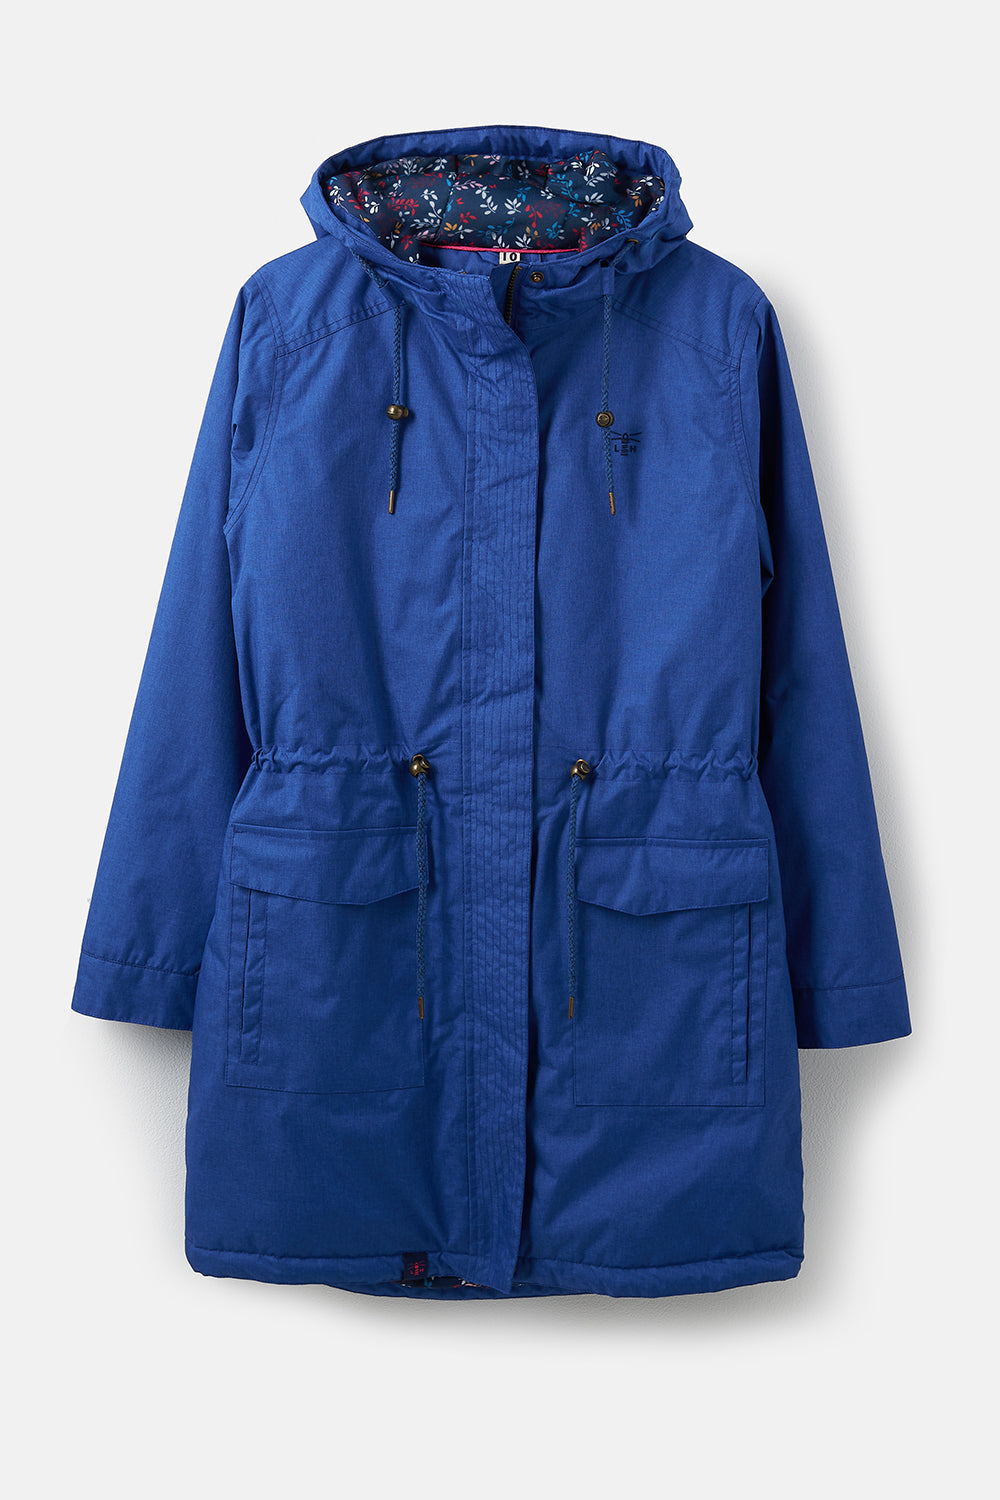 Lighthouse Lauren Womens Warm Waterproof Parka - Blue